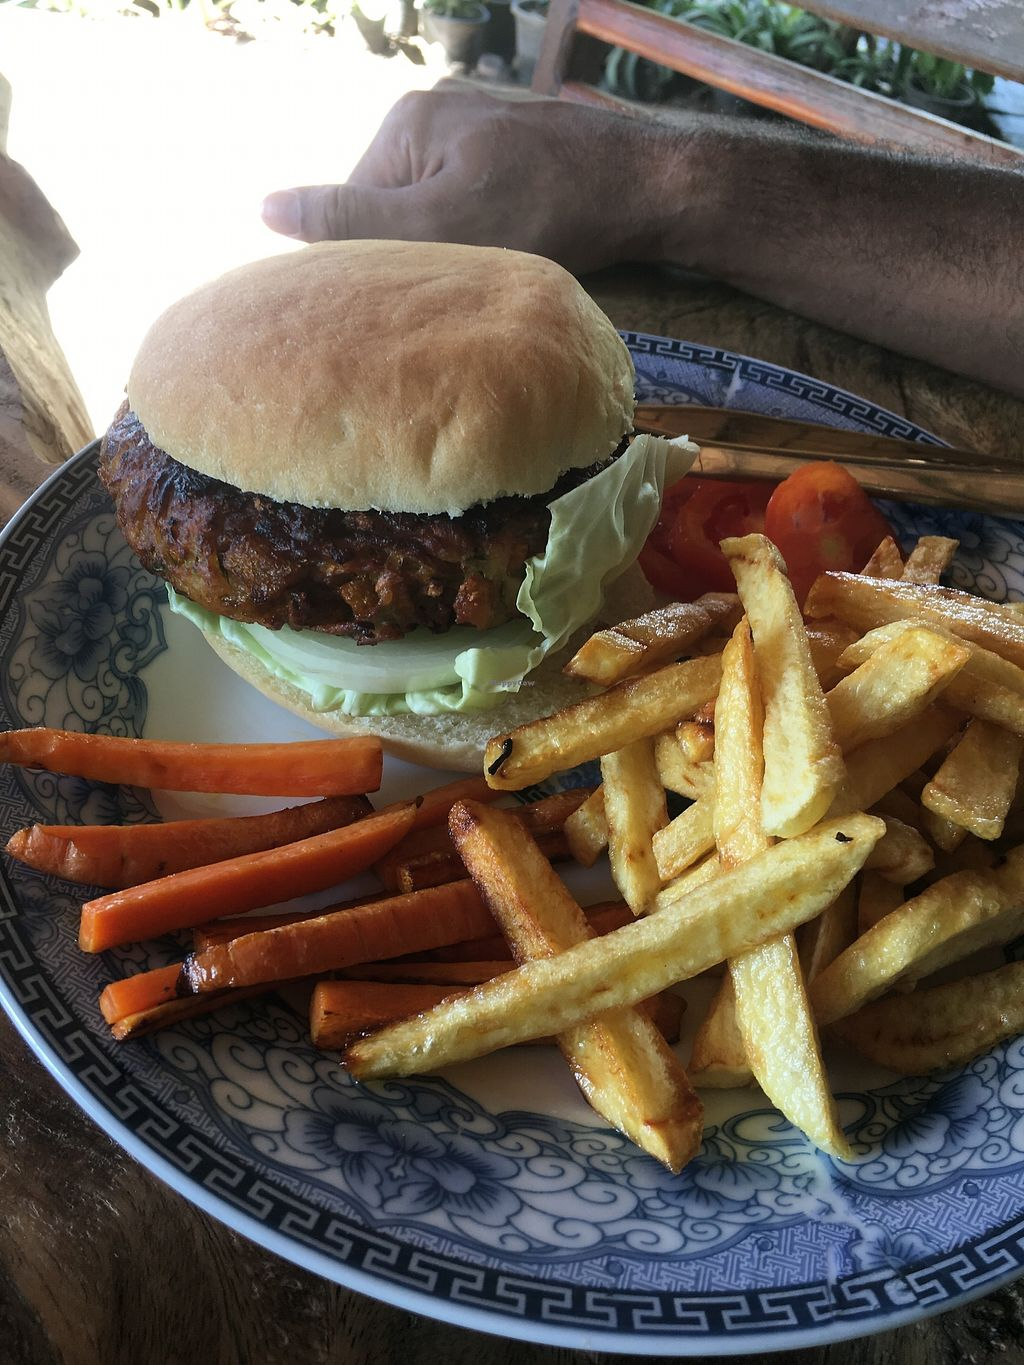 """Photo of The Garden of Nang  by <a href=""""/members/profile/Hopealomu"""">Hopealomu</a> <br/>Pumpkin Burger <br/> October 3, 2017  - <a href='/contact/abuse/image/90402/311383'>Report</a>"""